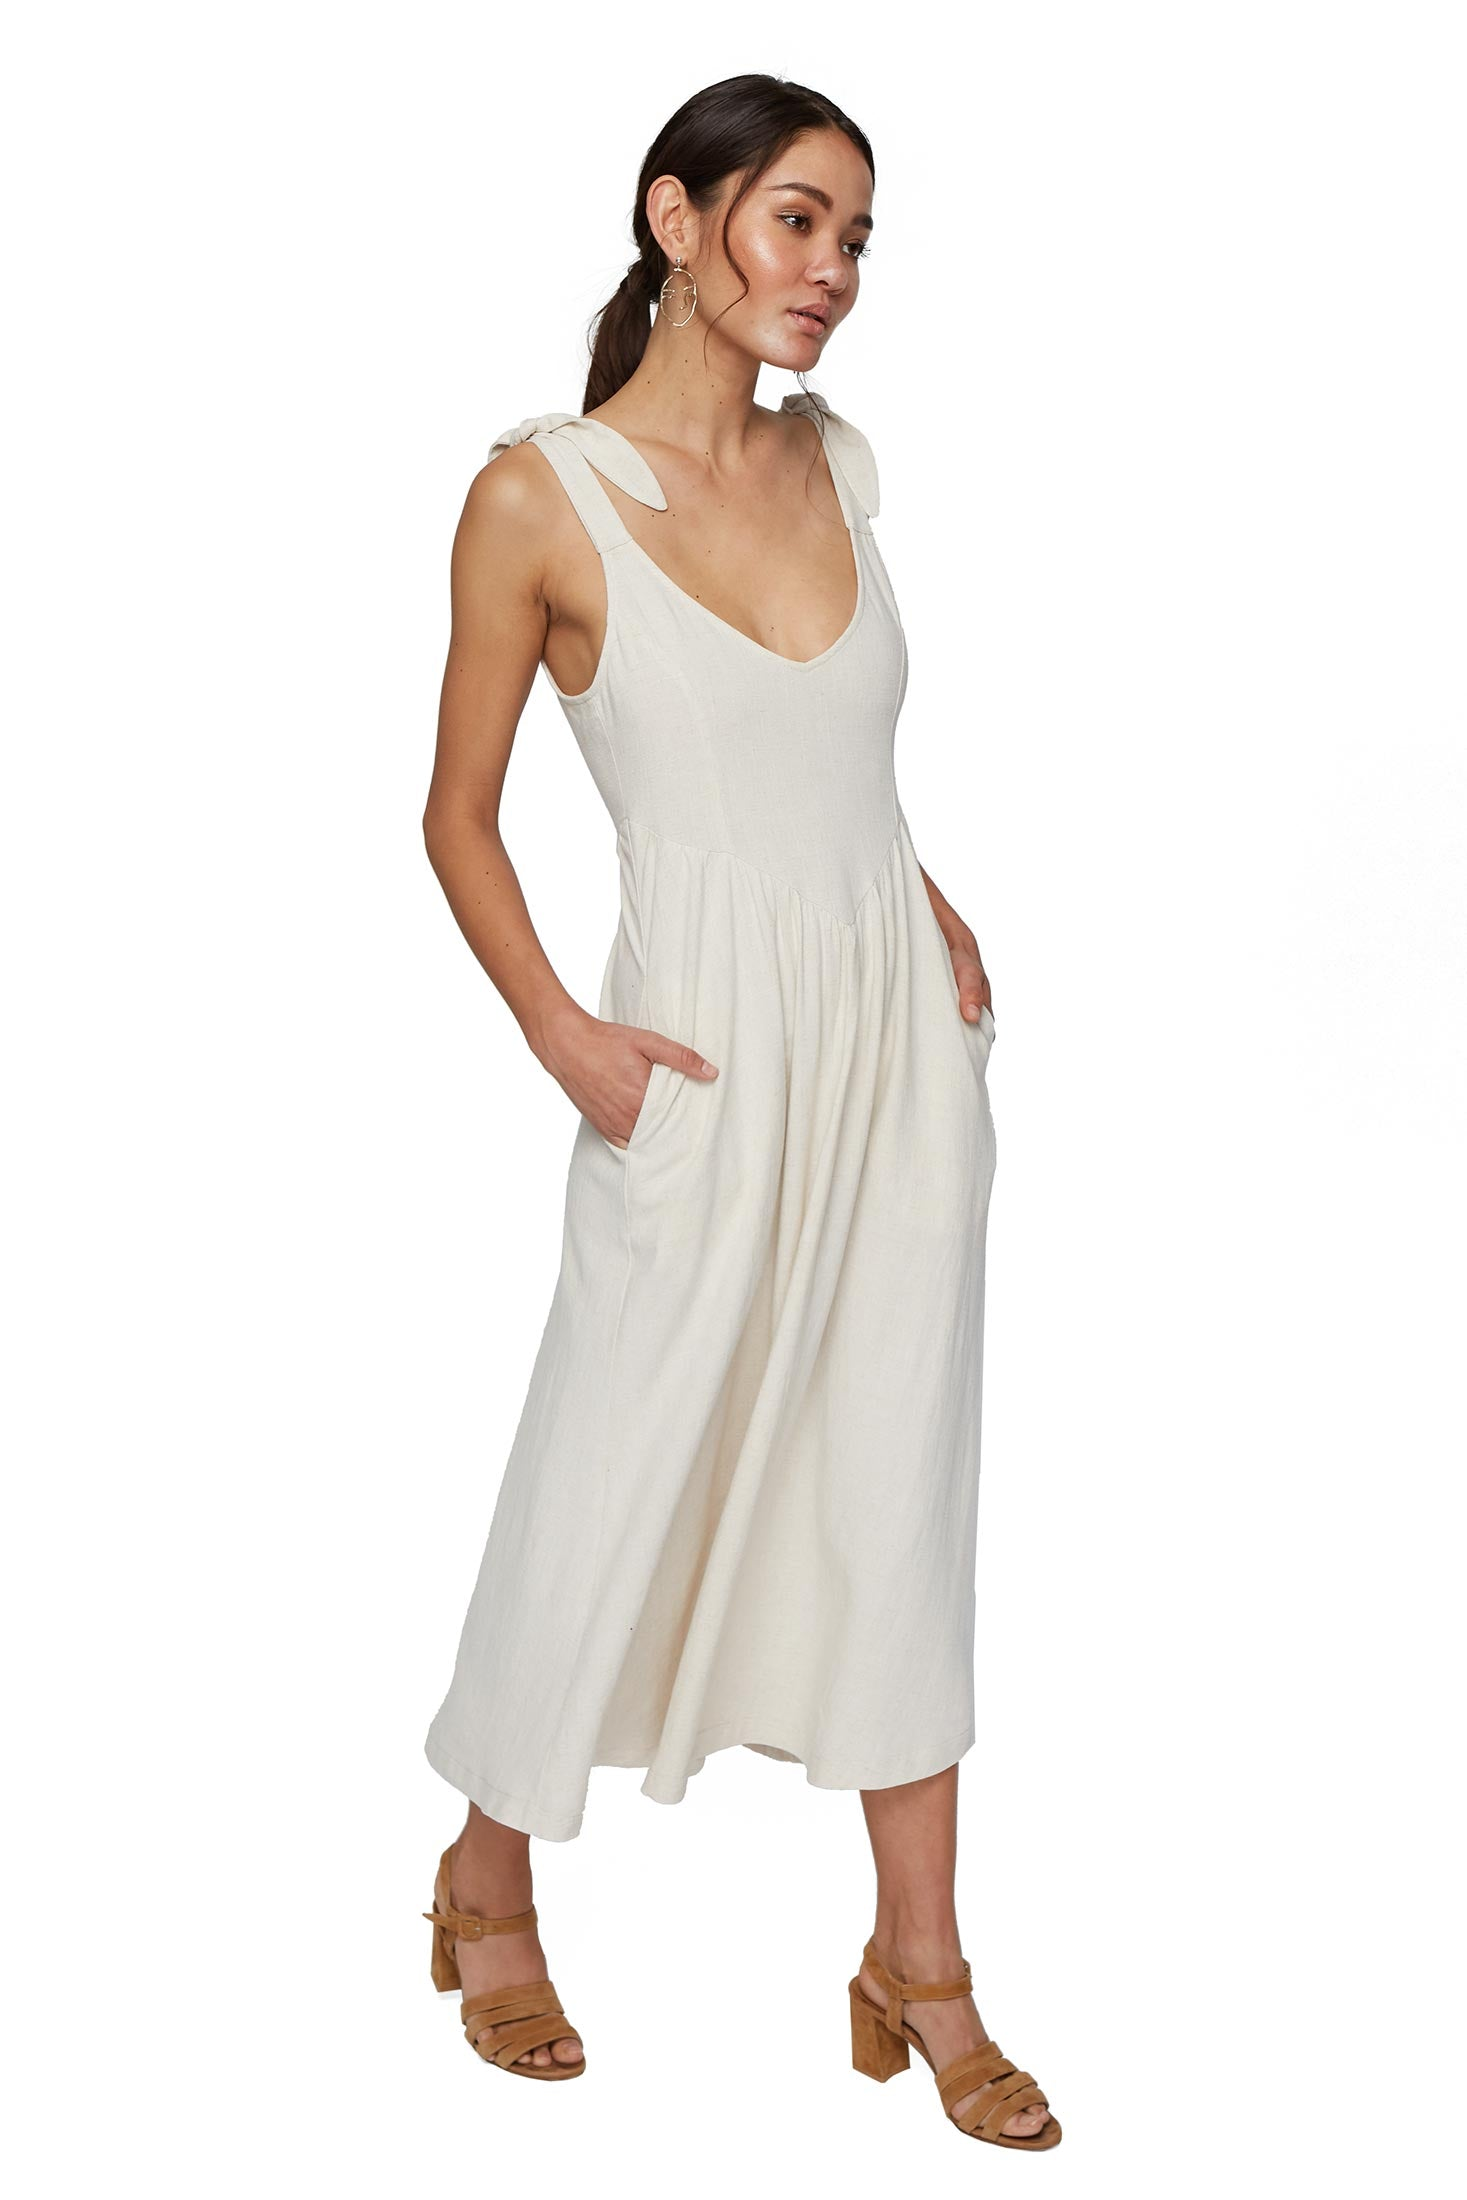 Linen Katy Dress - Natural